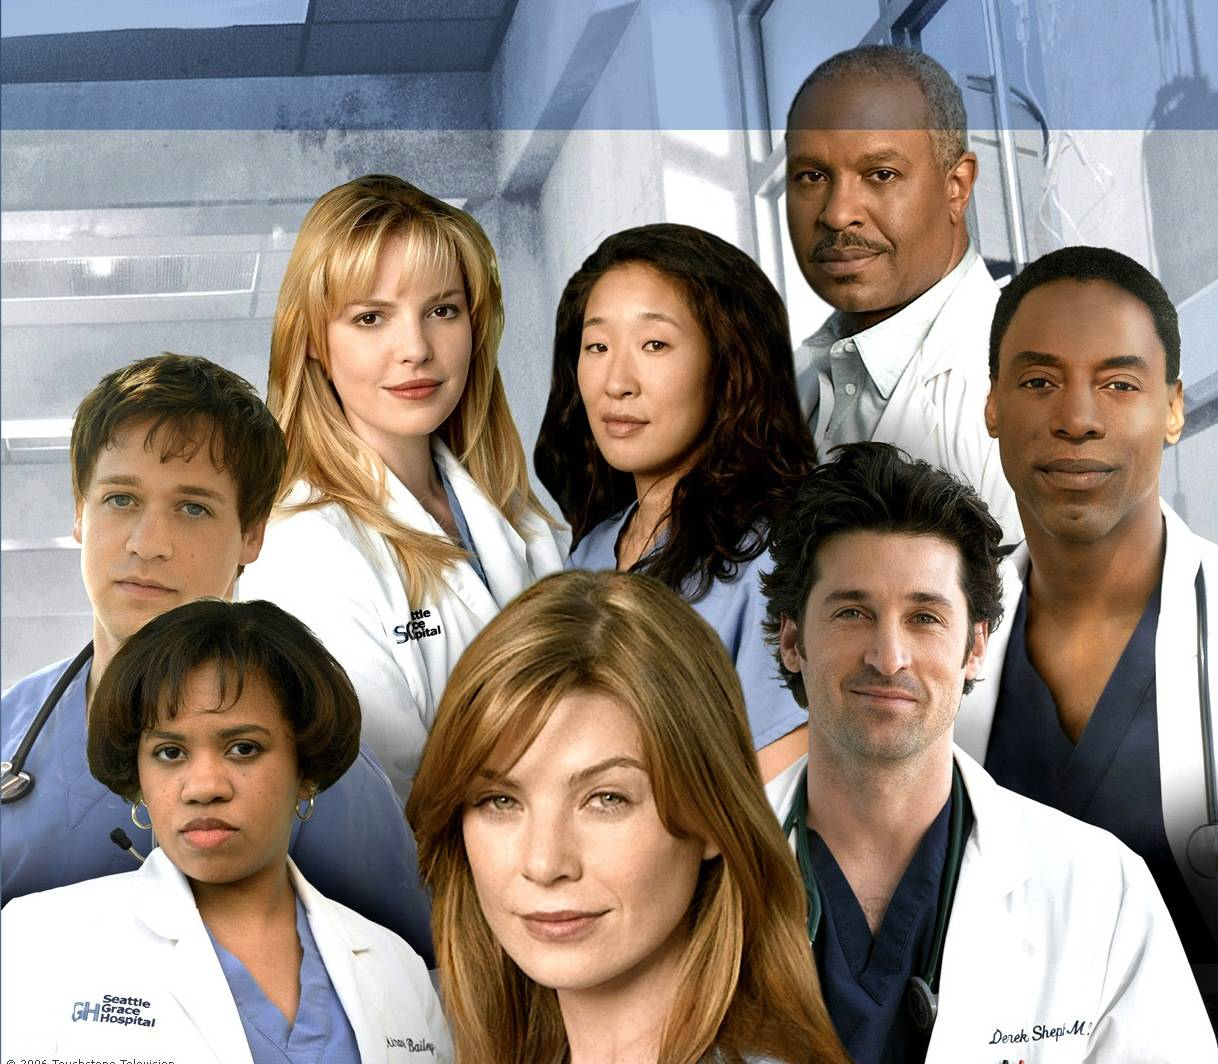 Kool Press Greys Anatomy Season 6